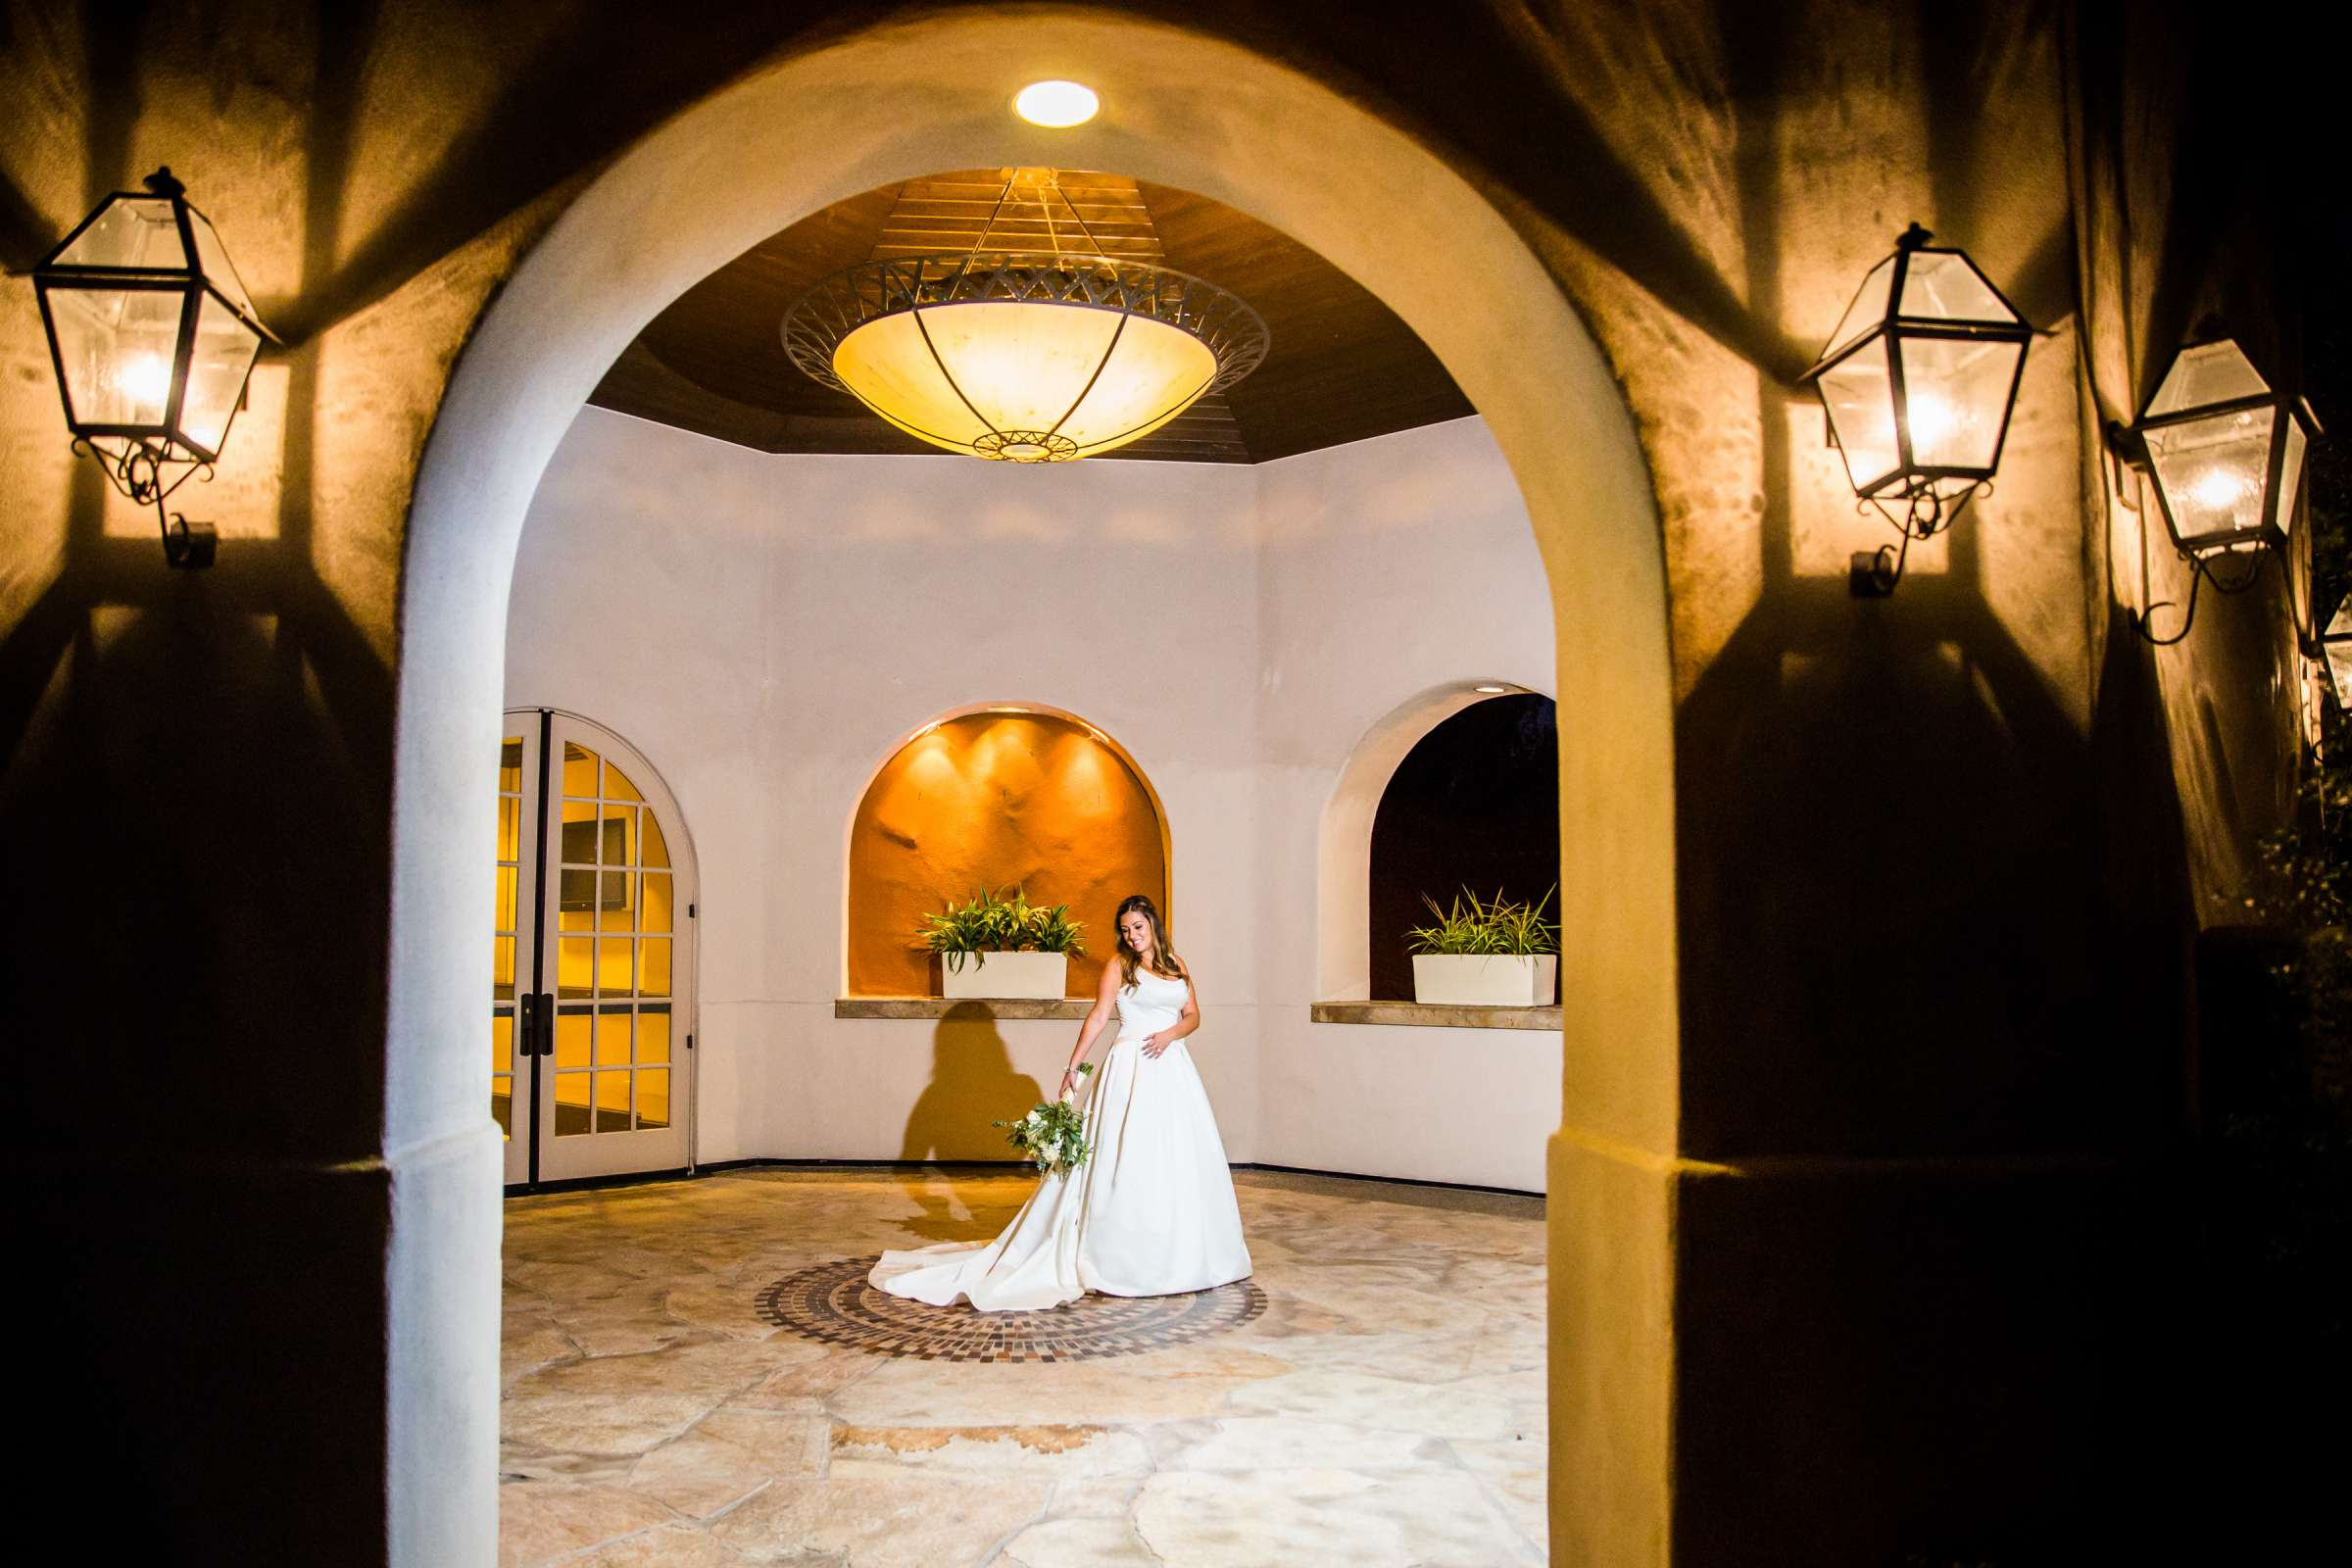 Rancho Bernardo Inn Wedding coordinated by Très Chic Events, Stefania and Nicholas Wedding Photo #8 by True Photography